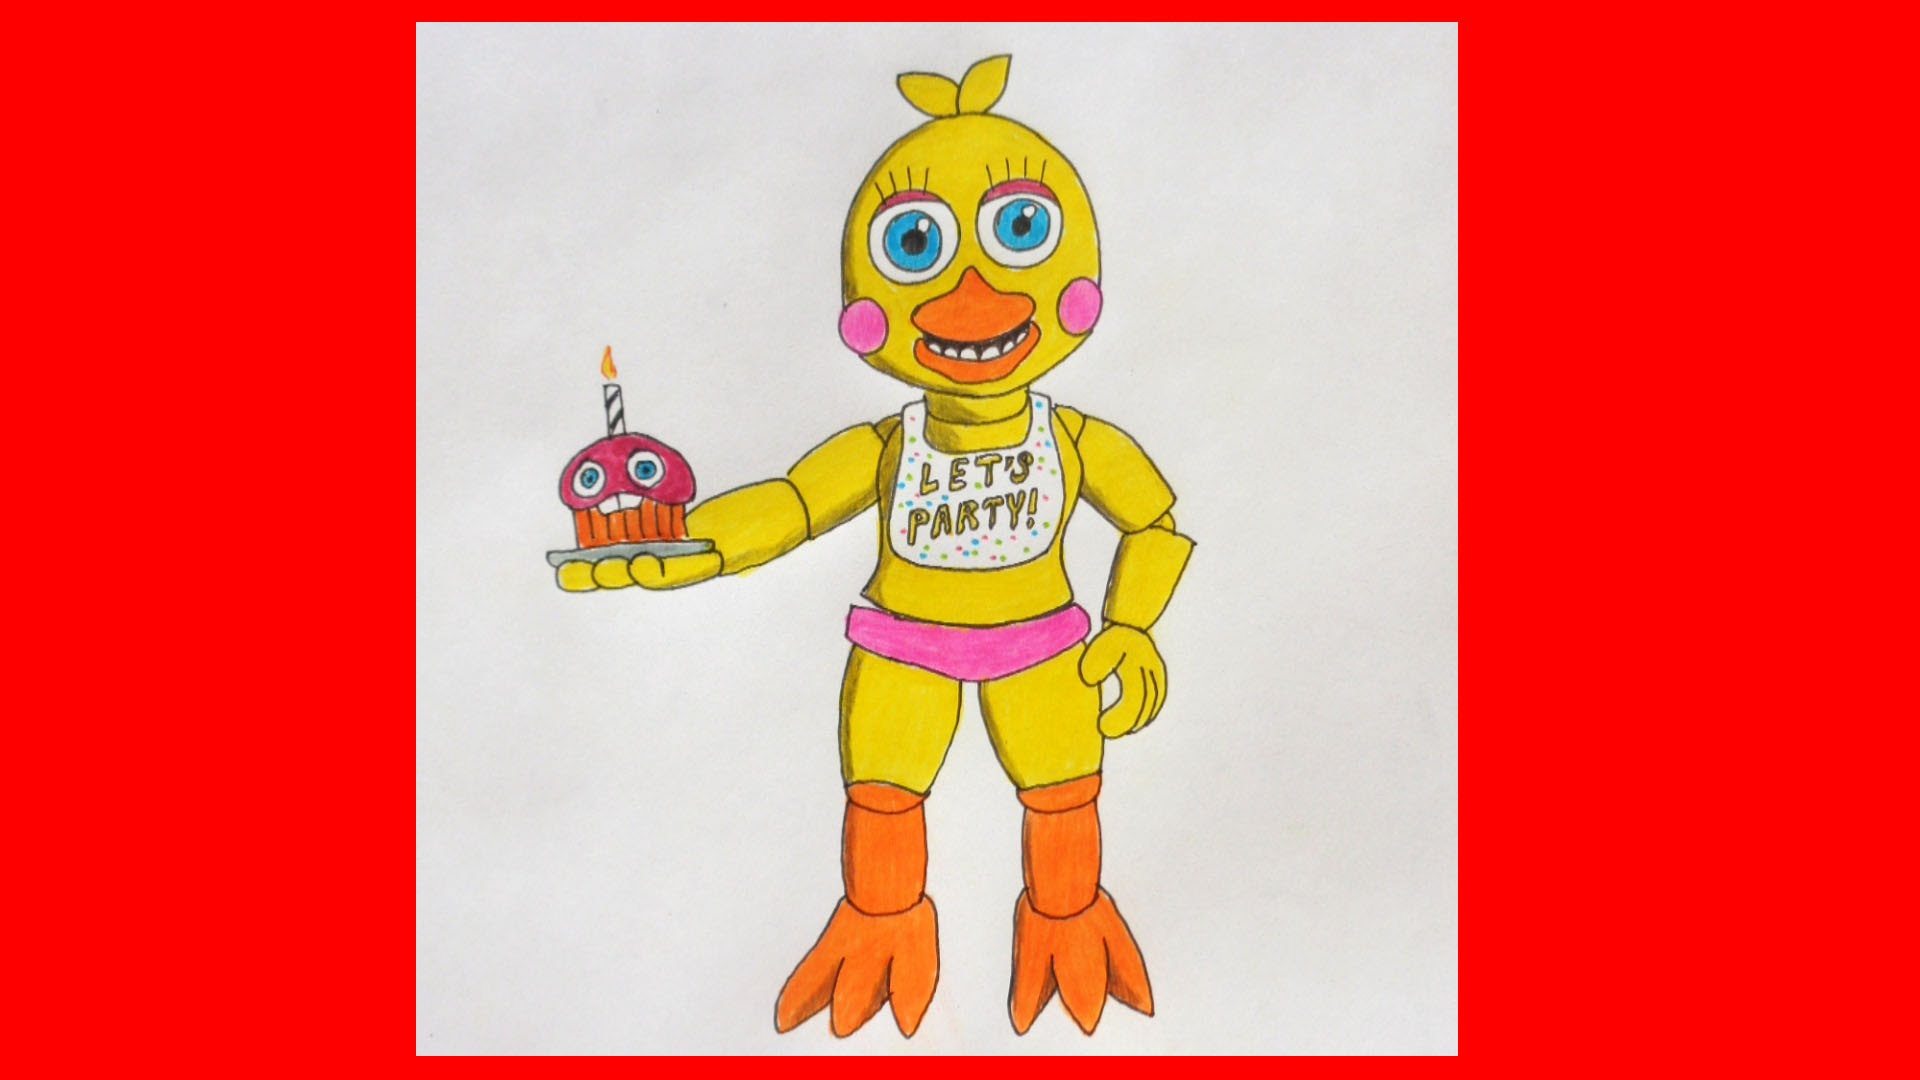 1920x1080 How To Draw Adventure Toy Chica, Five Nights